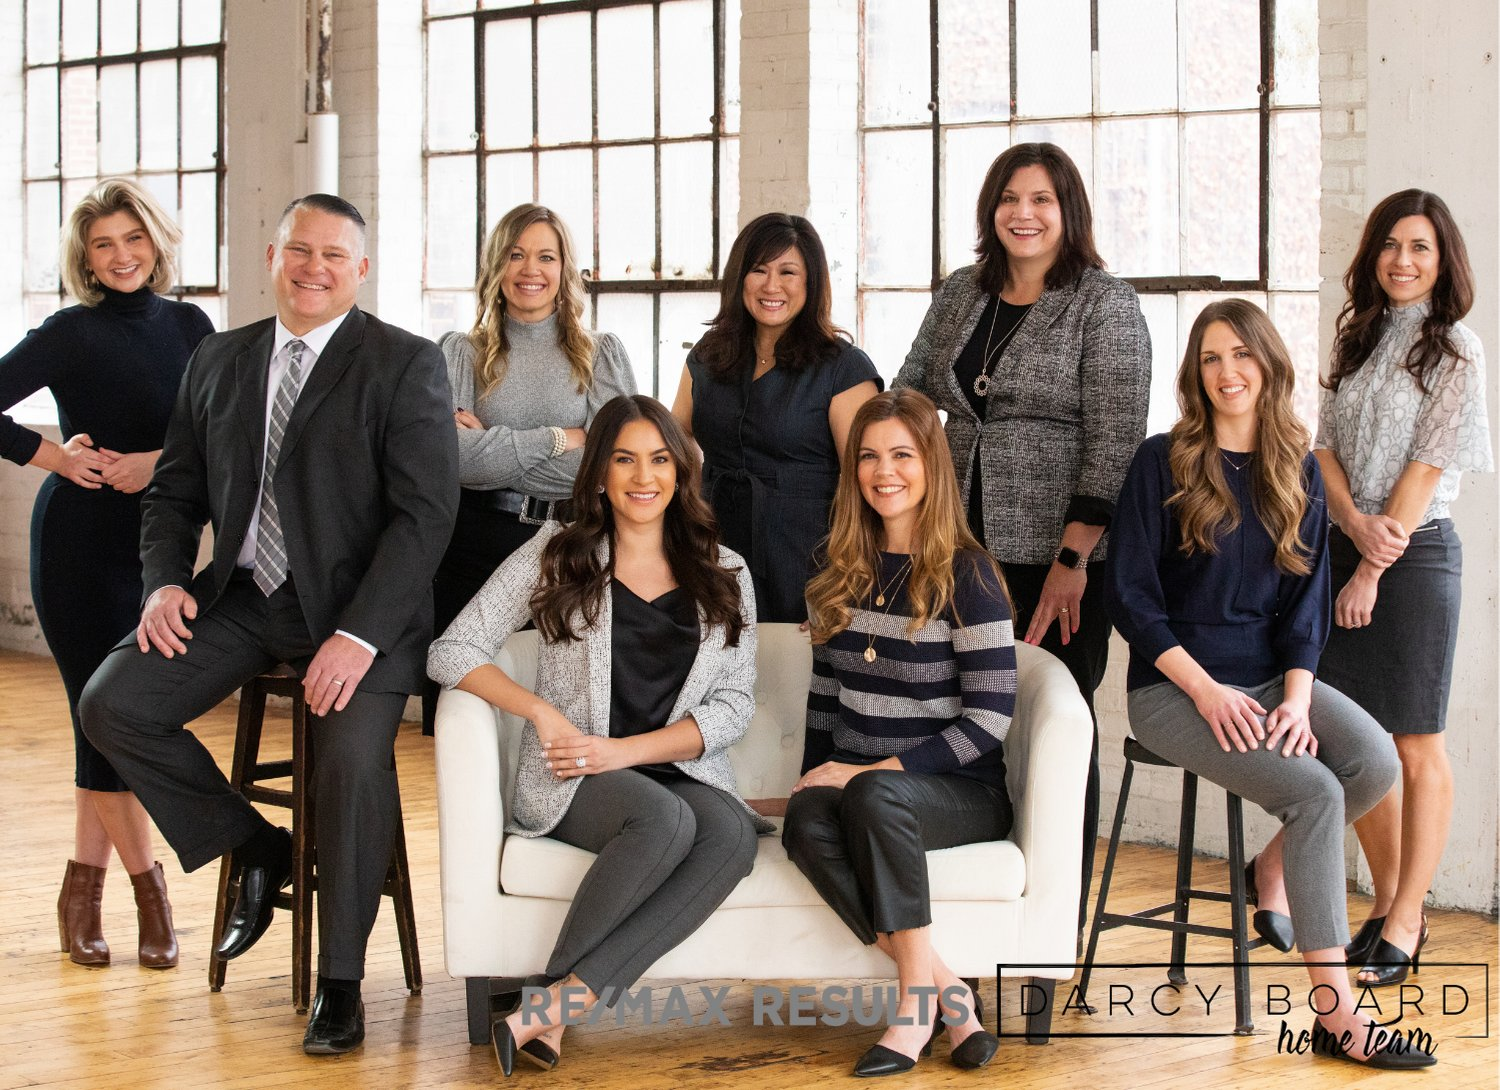 The Darcy Board Home Team with RE/MAX Results